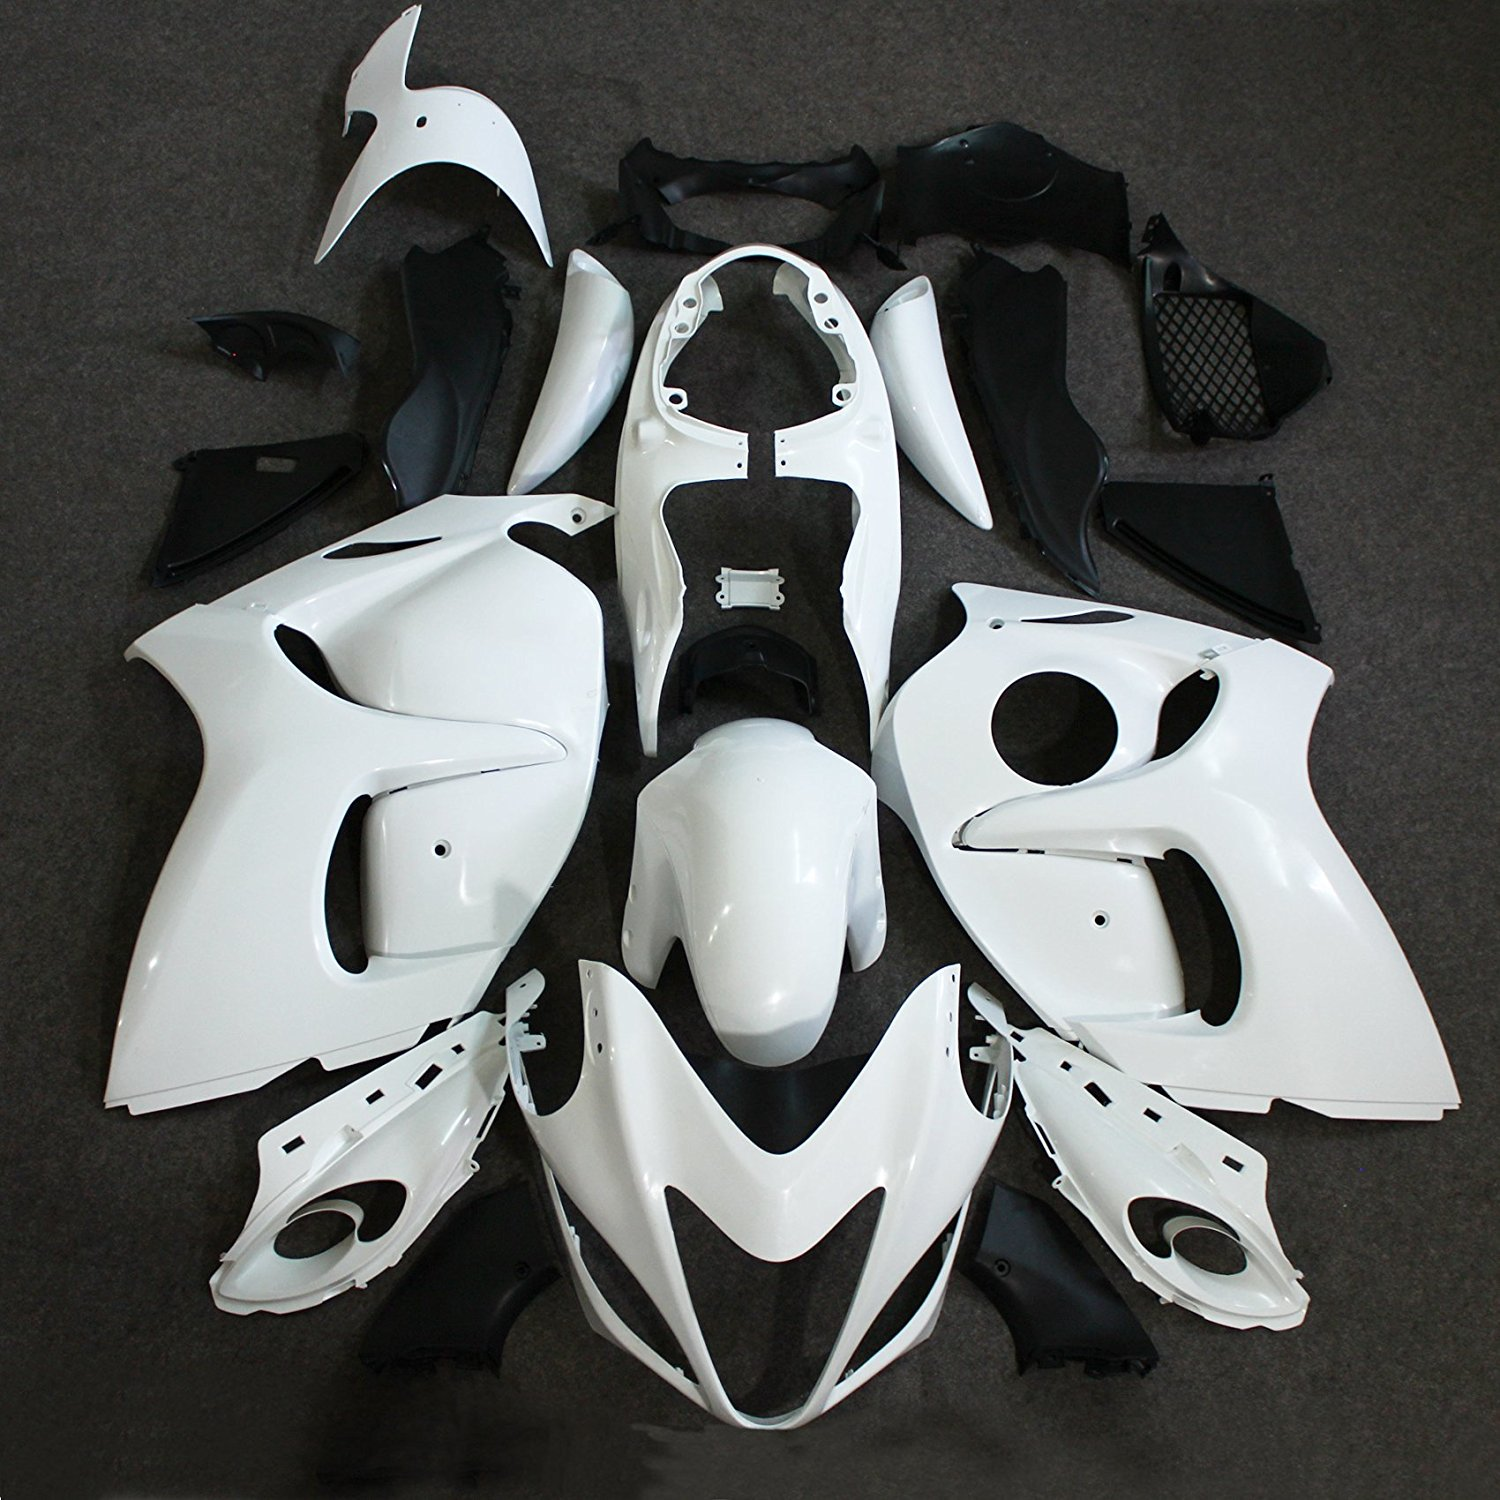 ABS Injection Molding Fairing Kit For Suzuki Hayabusa GSXR1300 GSX-R1300 2008 - 2013 09 10 11 12 GSXR 1300 Unpainted Fairings